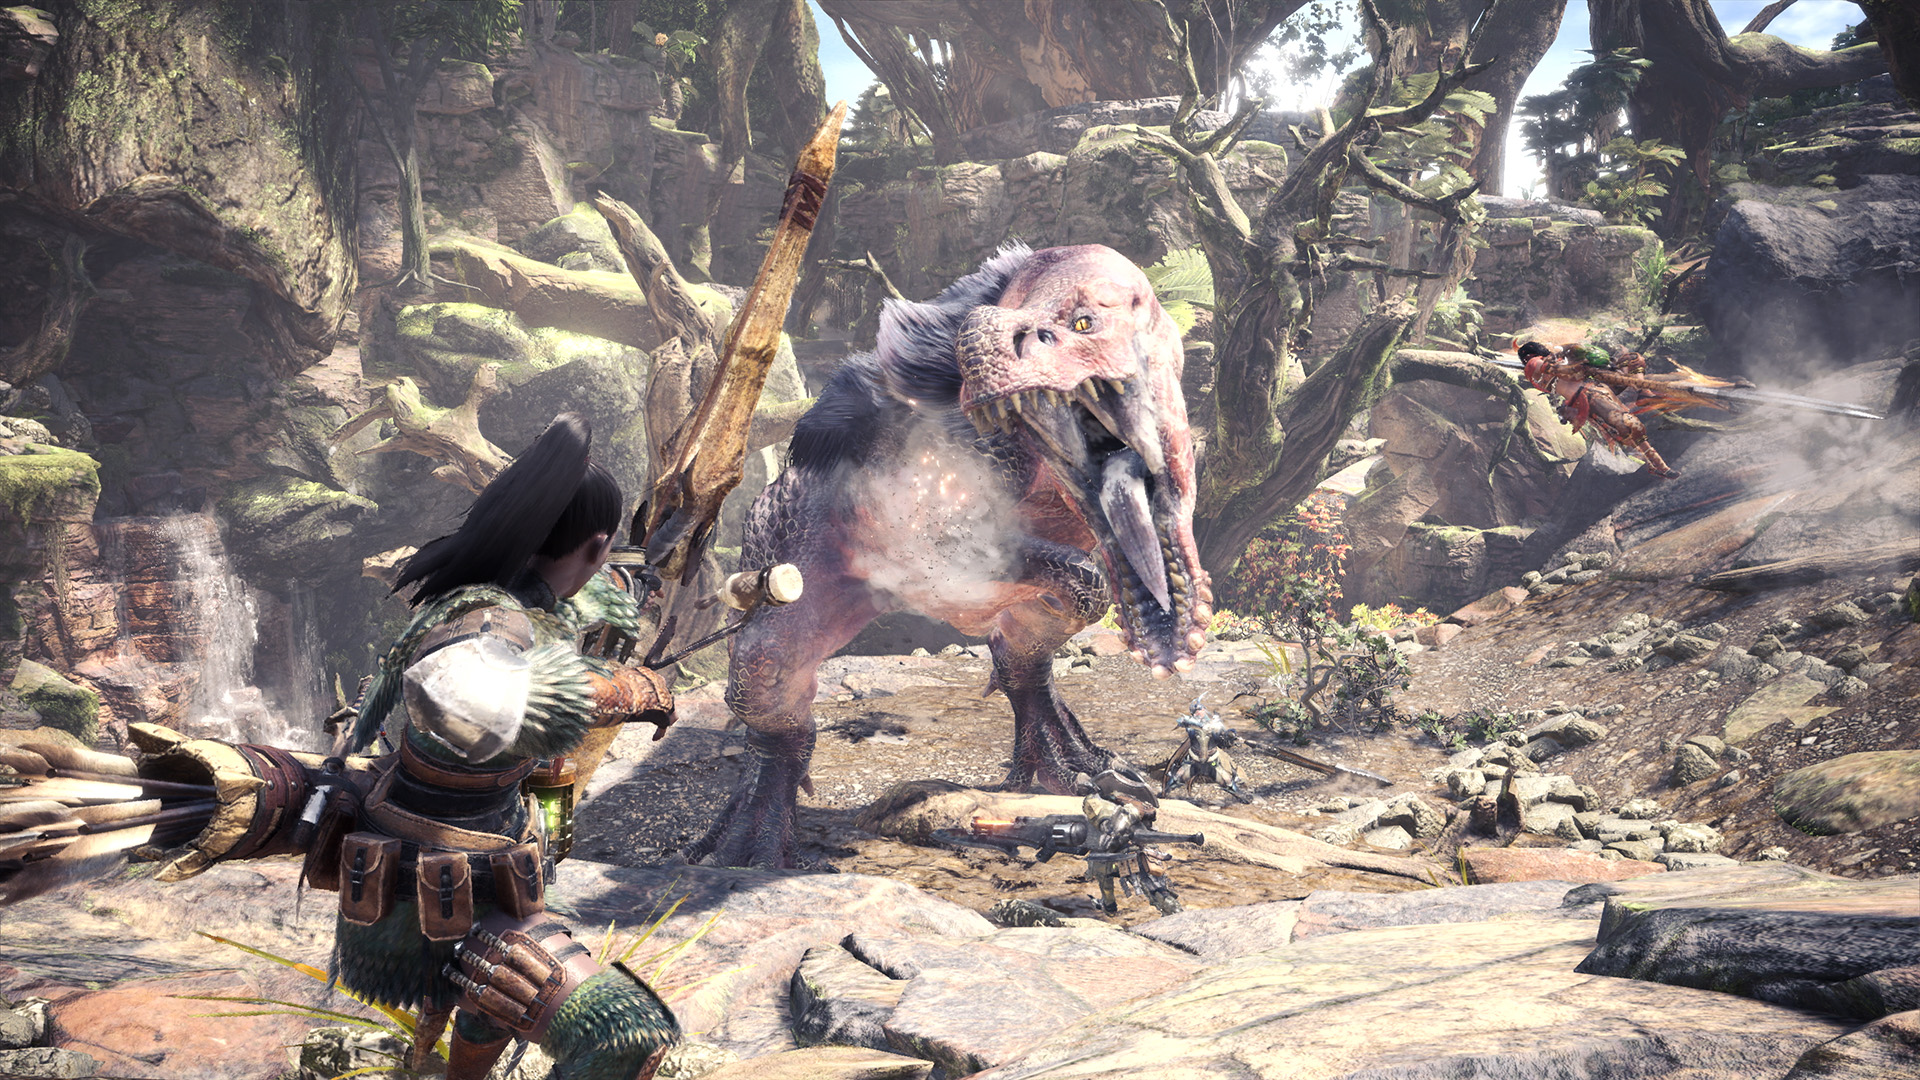 This screenshot from Monster Hunter: World shows a player character with a bow aiming at a massive monster called an Anjanath. Behind the creature is a massive canyon full of vines and ragged trees.